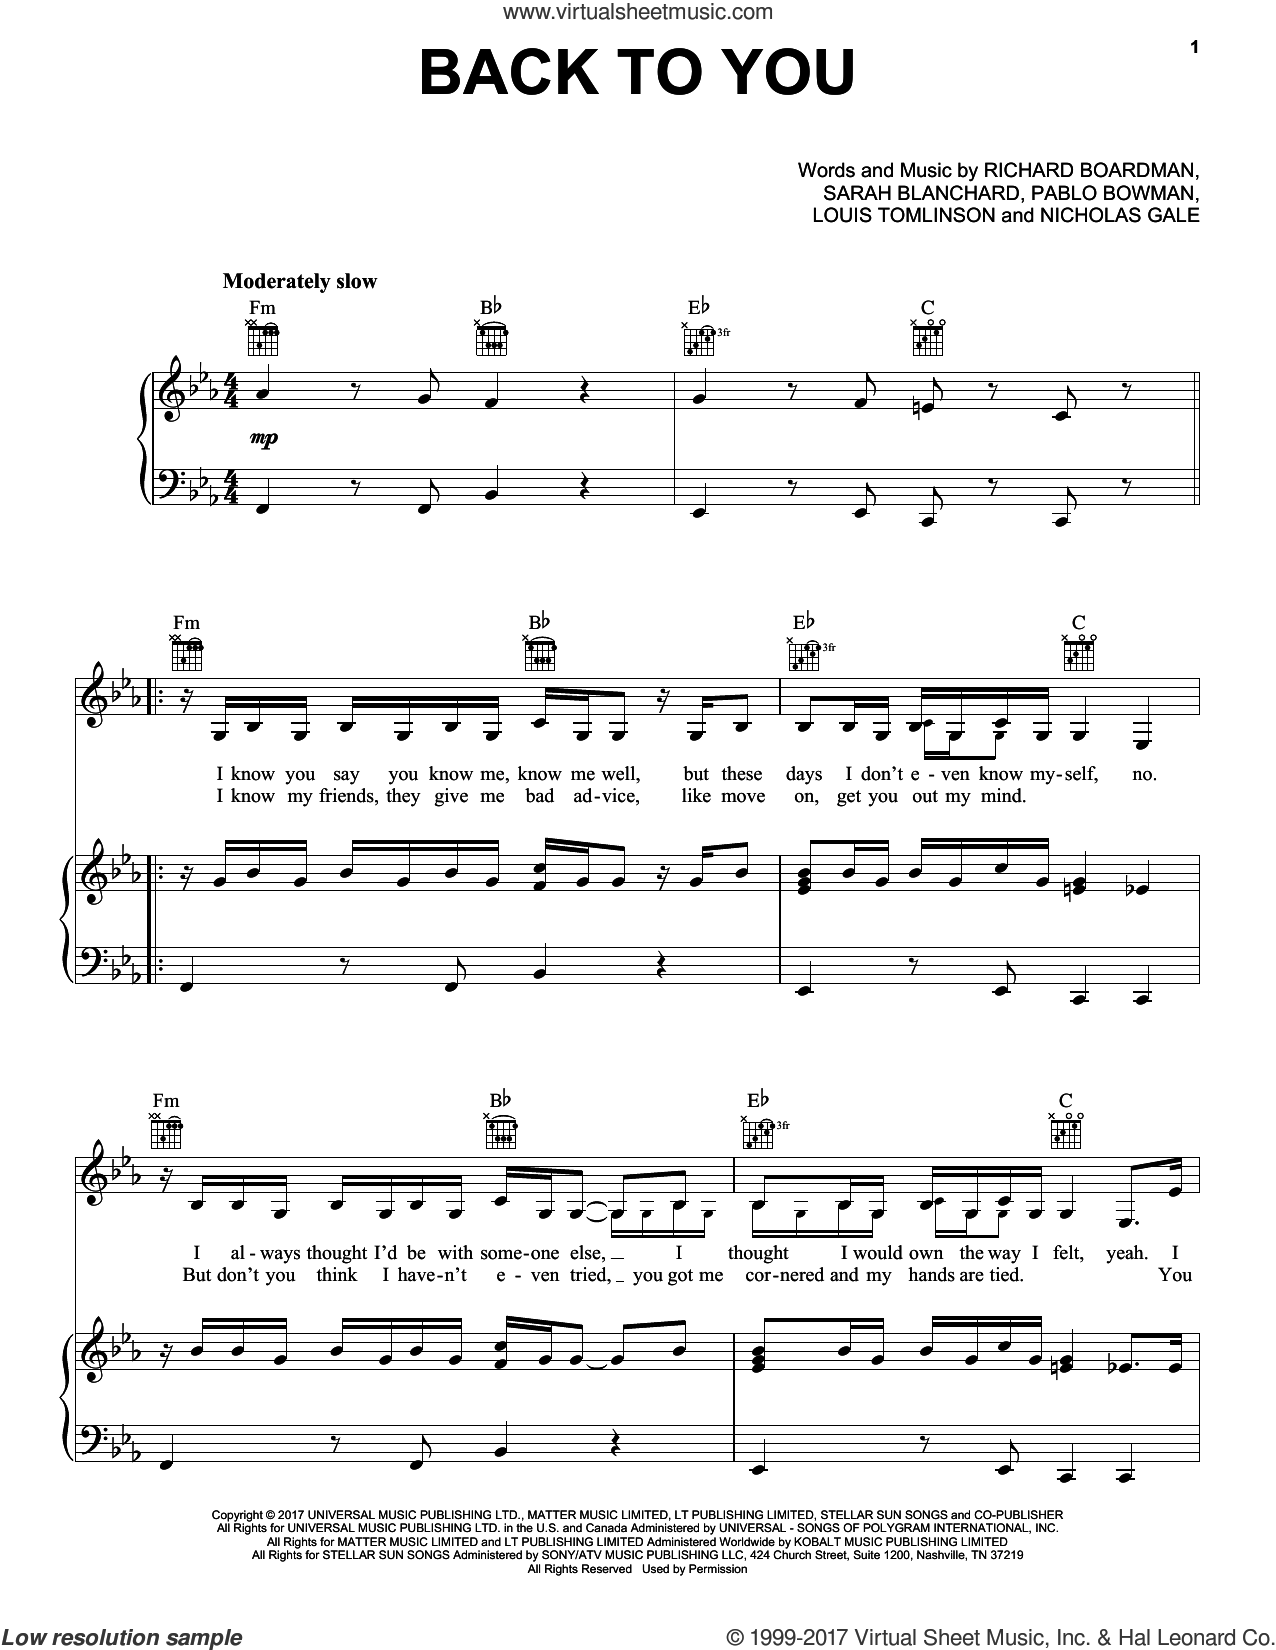 Back To You sheet music for voice, piano or guitar by Louis Tomlinson feat. Bebe Rexha & Digital Farm Animals, Louis Tomlinson, Nicholas Gale, Pablo Bowman, Richard Boardman and Sarah Blanchard, intermediate skill level